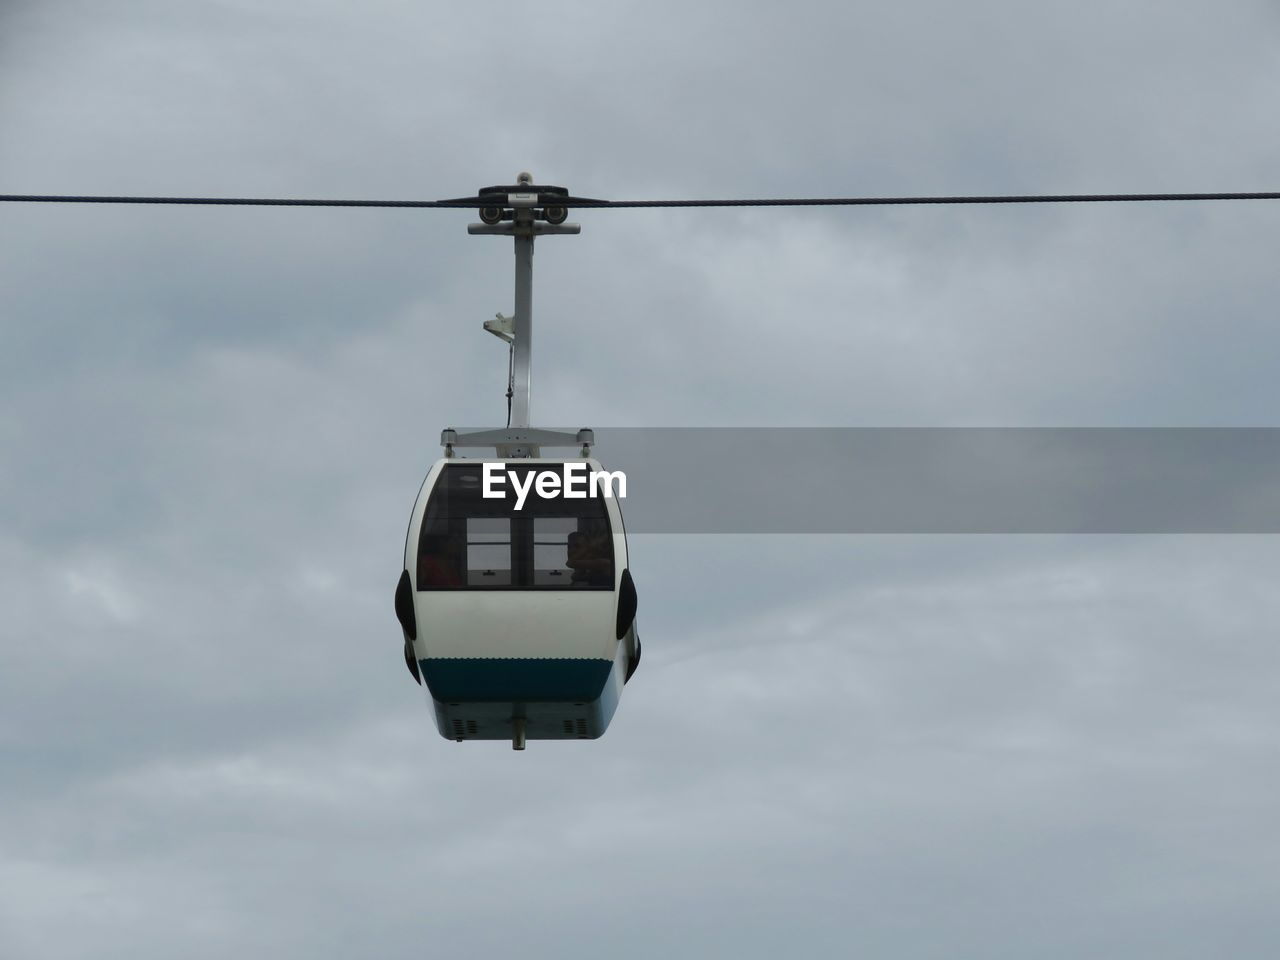 cloud - sky, sky, cable car, low angle view, cable, day, no people, overhead cable car, nature, hanging, mode of transportation, outdoors, transportation, overcast, travel, ski lift, electricity, communication, public transportation, light